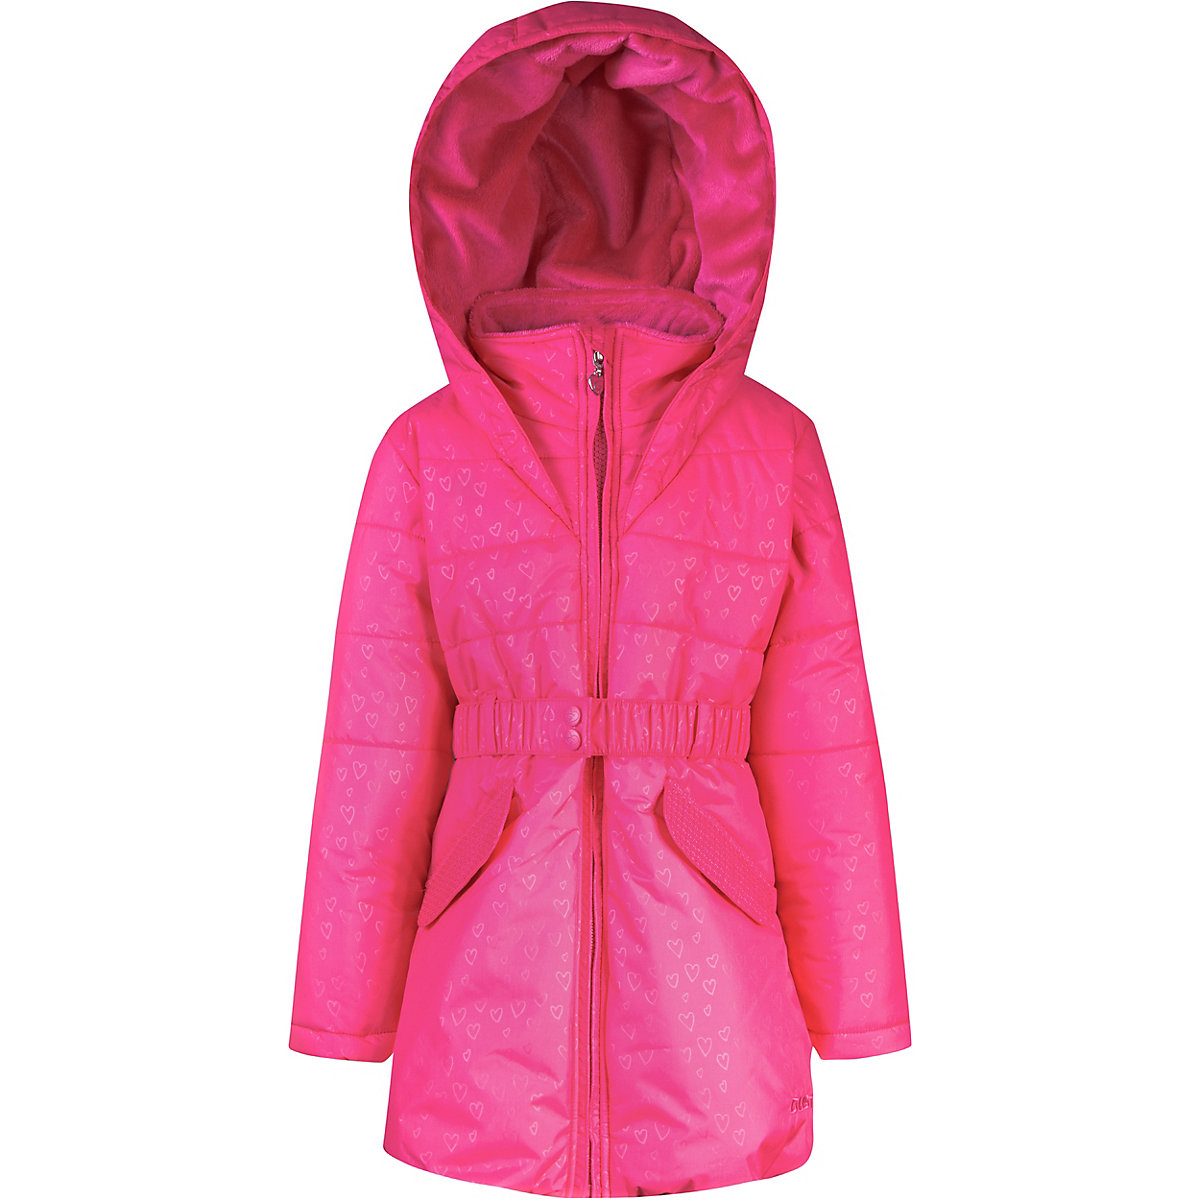 GUSTI Down & Parkas 9512064 jacket for girls winter outerwear children jackets boys clothing MTpromo fyh kids clothing boys pu leather jacket warm fleece winter children thicken outerwear kids faux leather coat solid color 4 14y